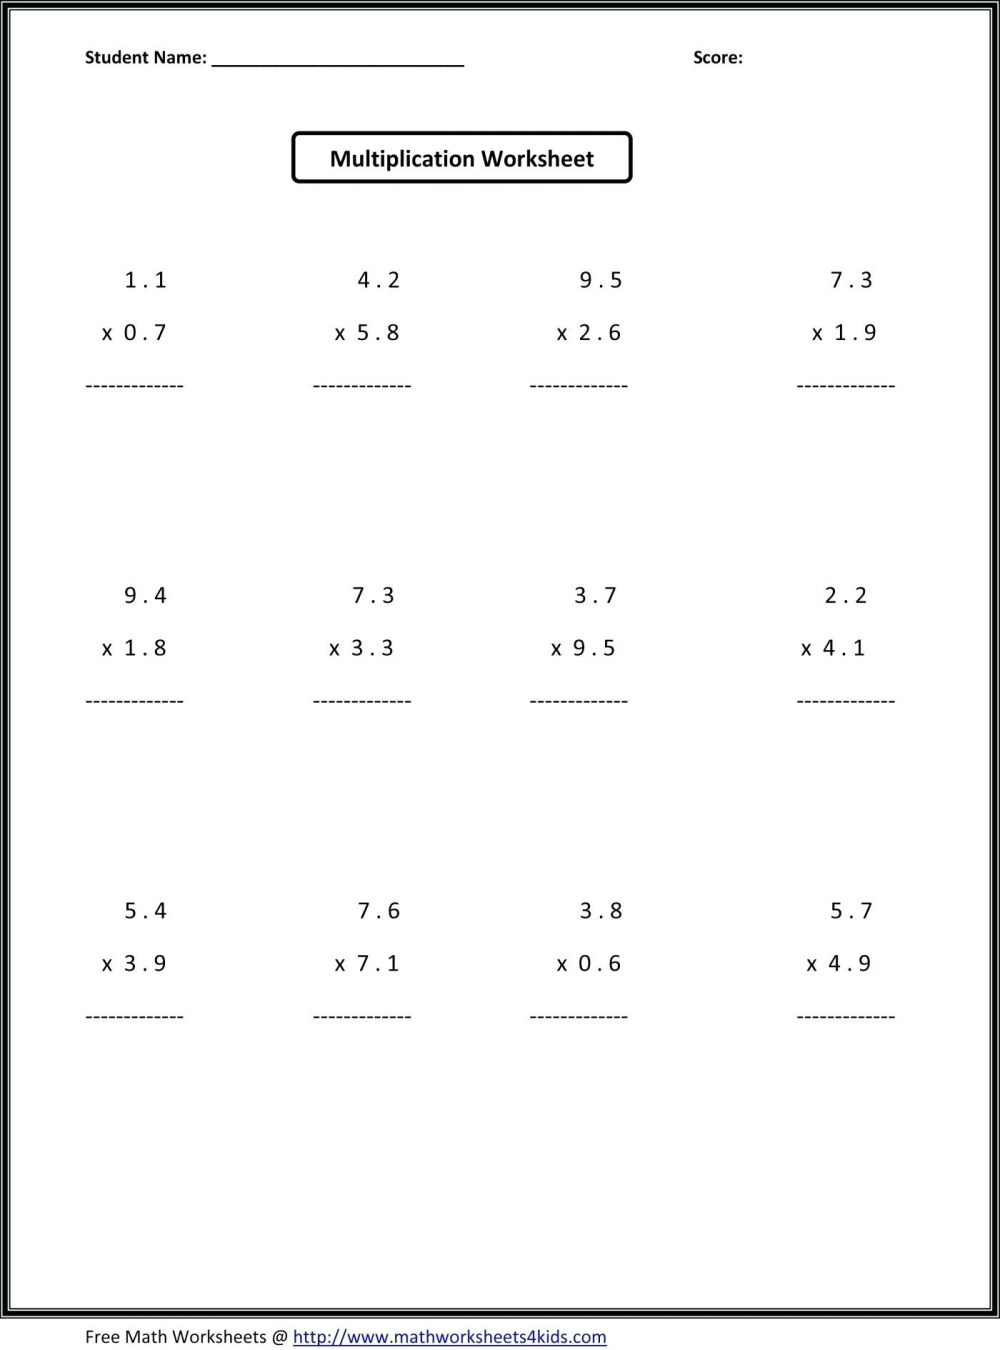 medium resolution of 4 Free Math Worksheets Third Grade 3 Fractions and Decimals Mixed Numbers  to Improper Fractions - AMP